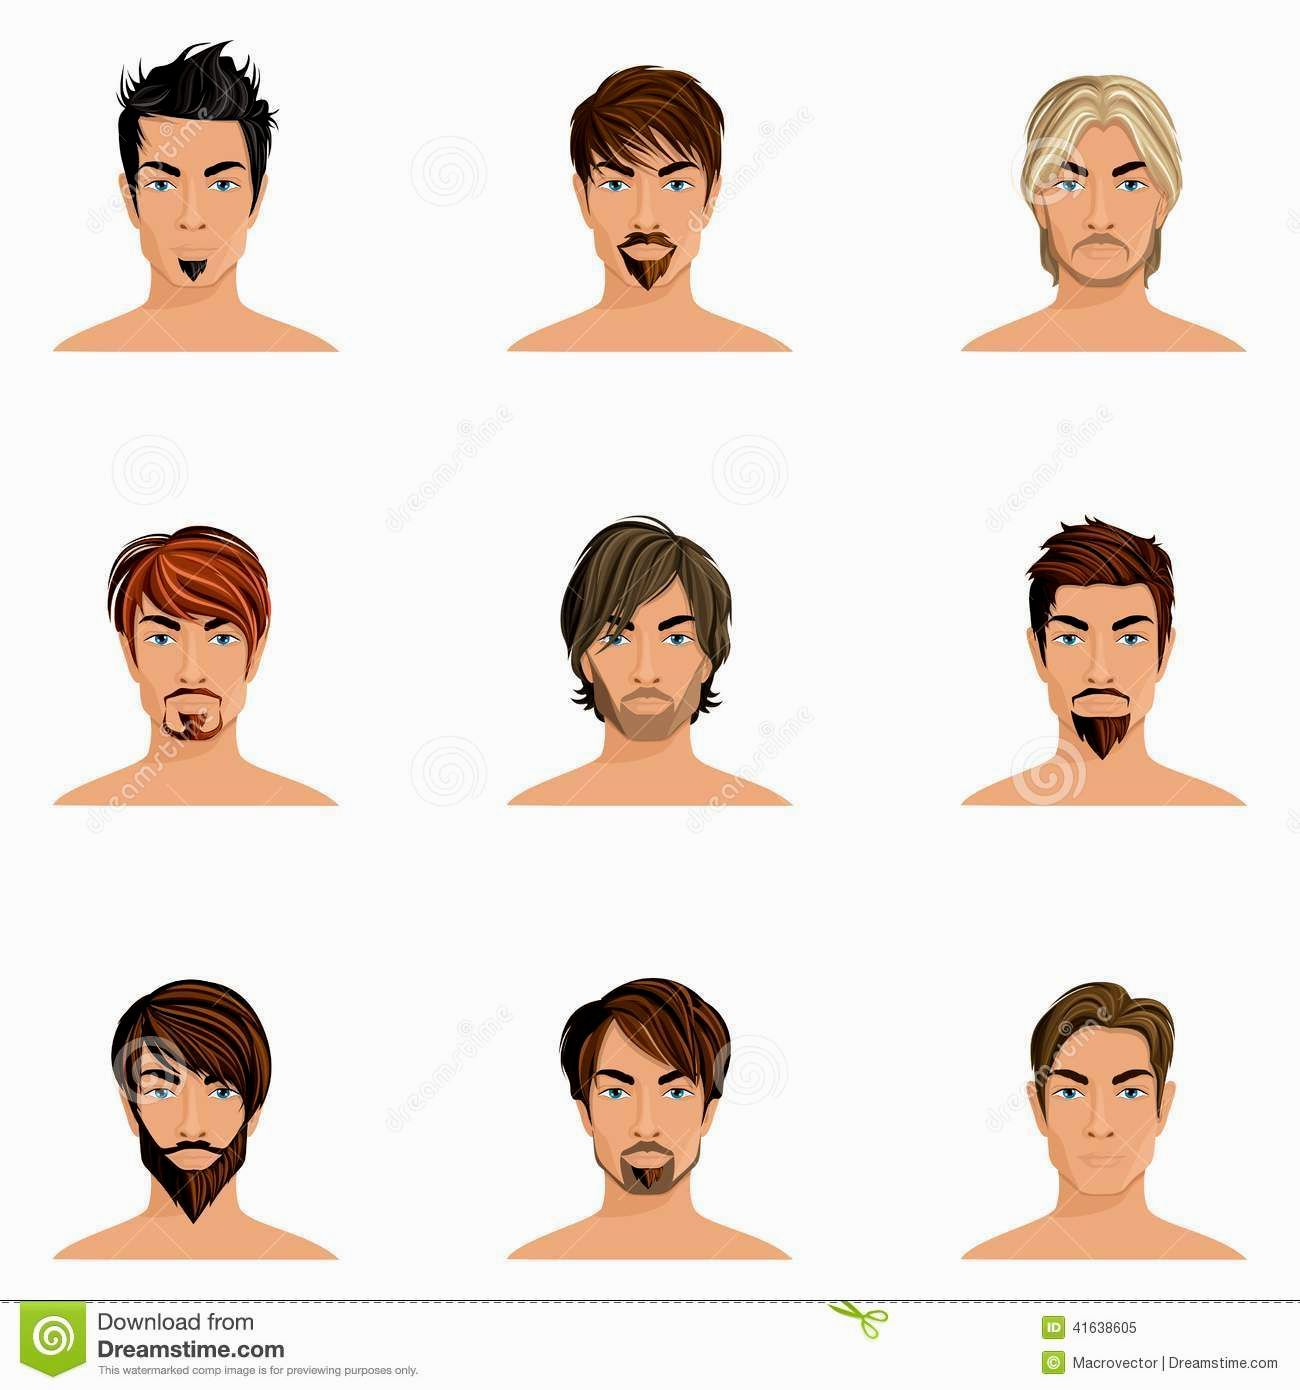 Men Hairstyles Illustration Hair styles, Illustration